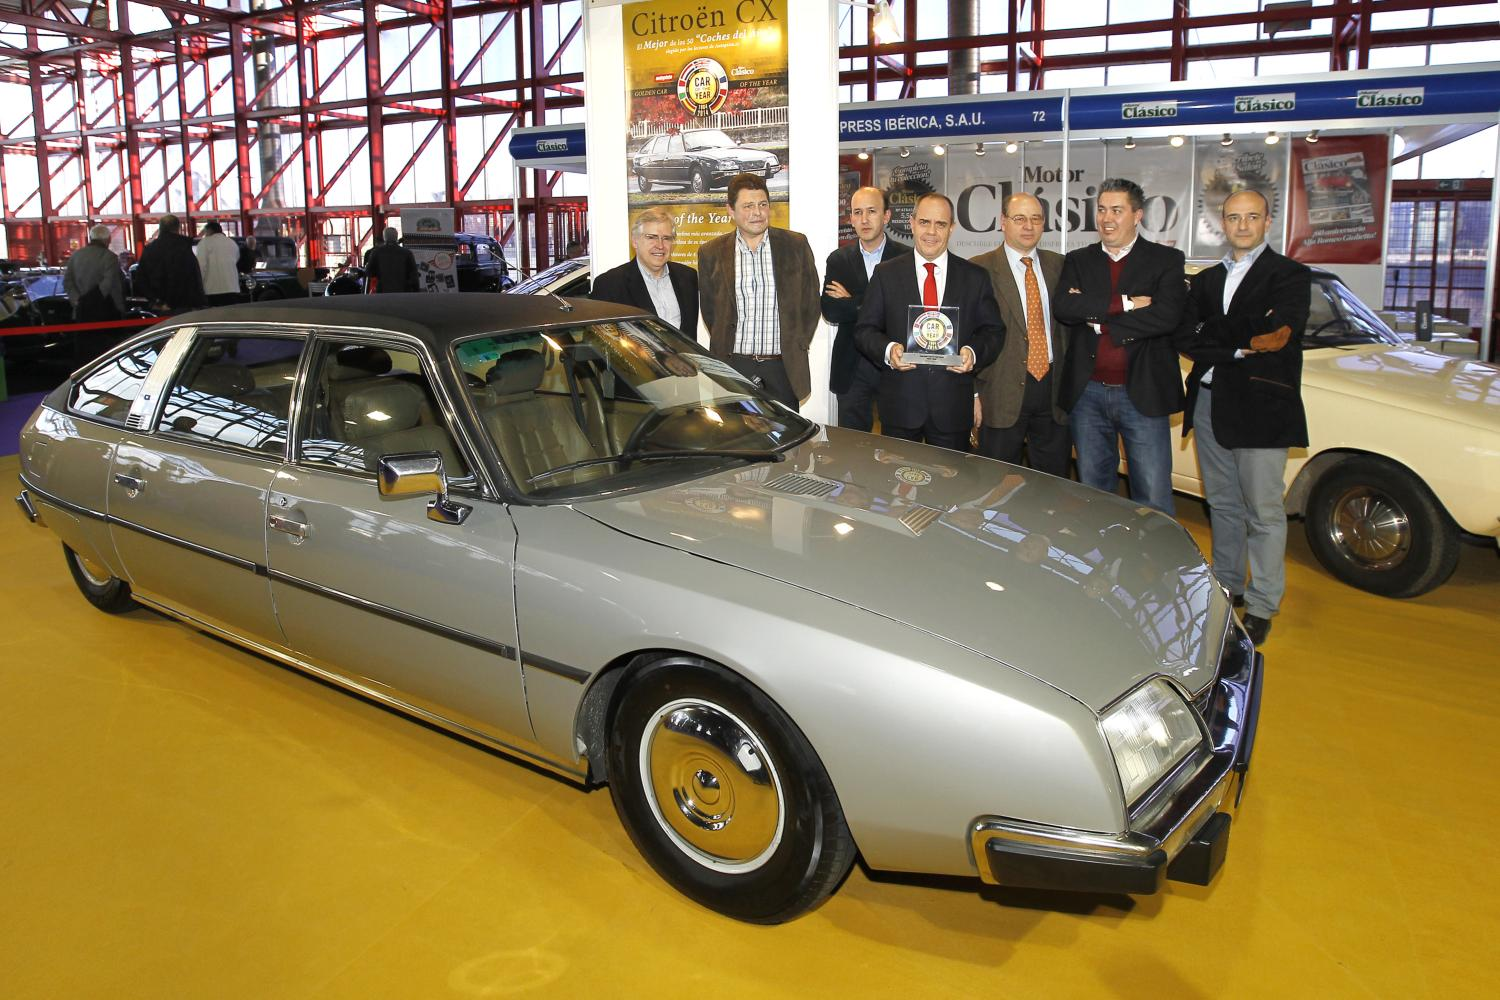 Citroën CX, recibe el Car of the Year de la historia